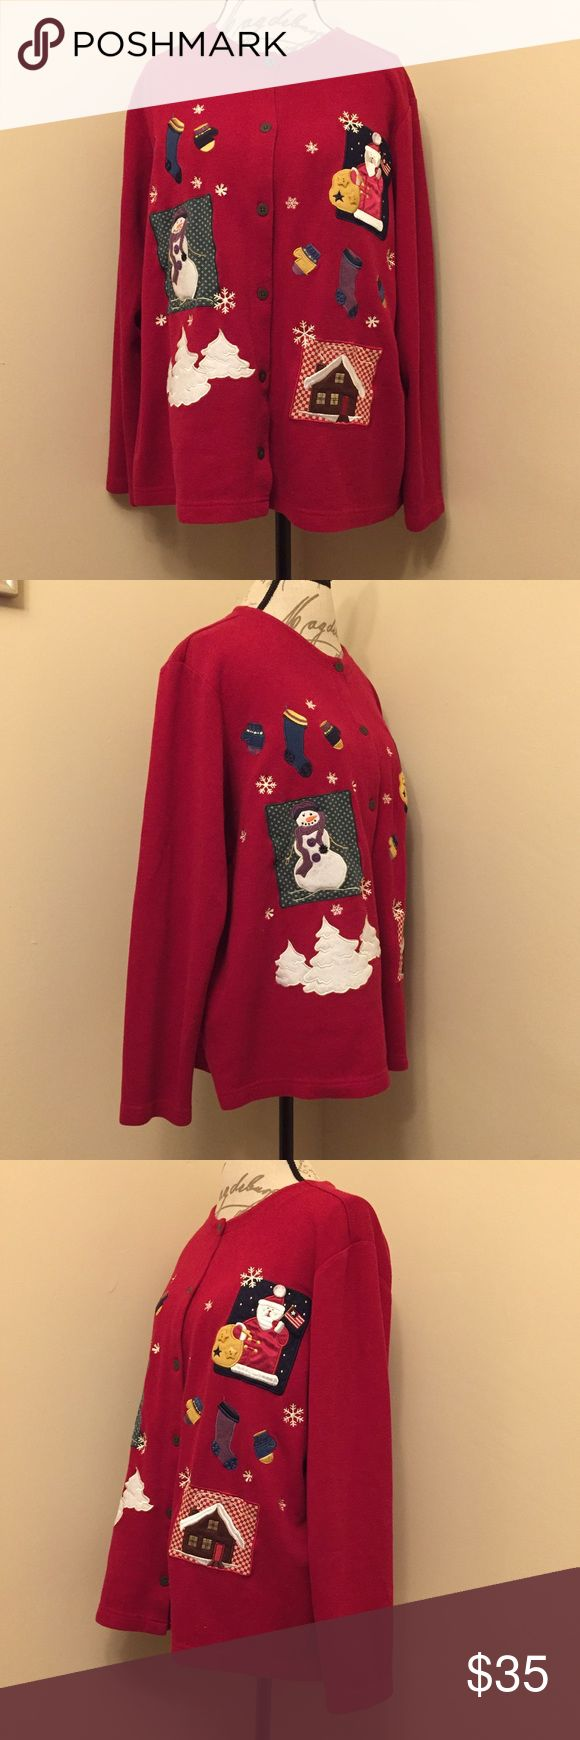 Christmas Cardigan Super cute Holiday cardigan! Euc! Great for teachers, or for the next Ugly Sweater Contest! Wear alone, or add some flair to get first prize.   60% Cotton  40% Polyester   Make me an offer OR Bundle two or more items and save 20%! Karen Scott Sweaters Cardigans